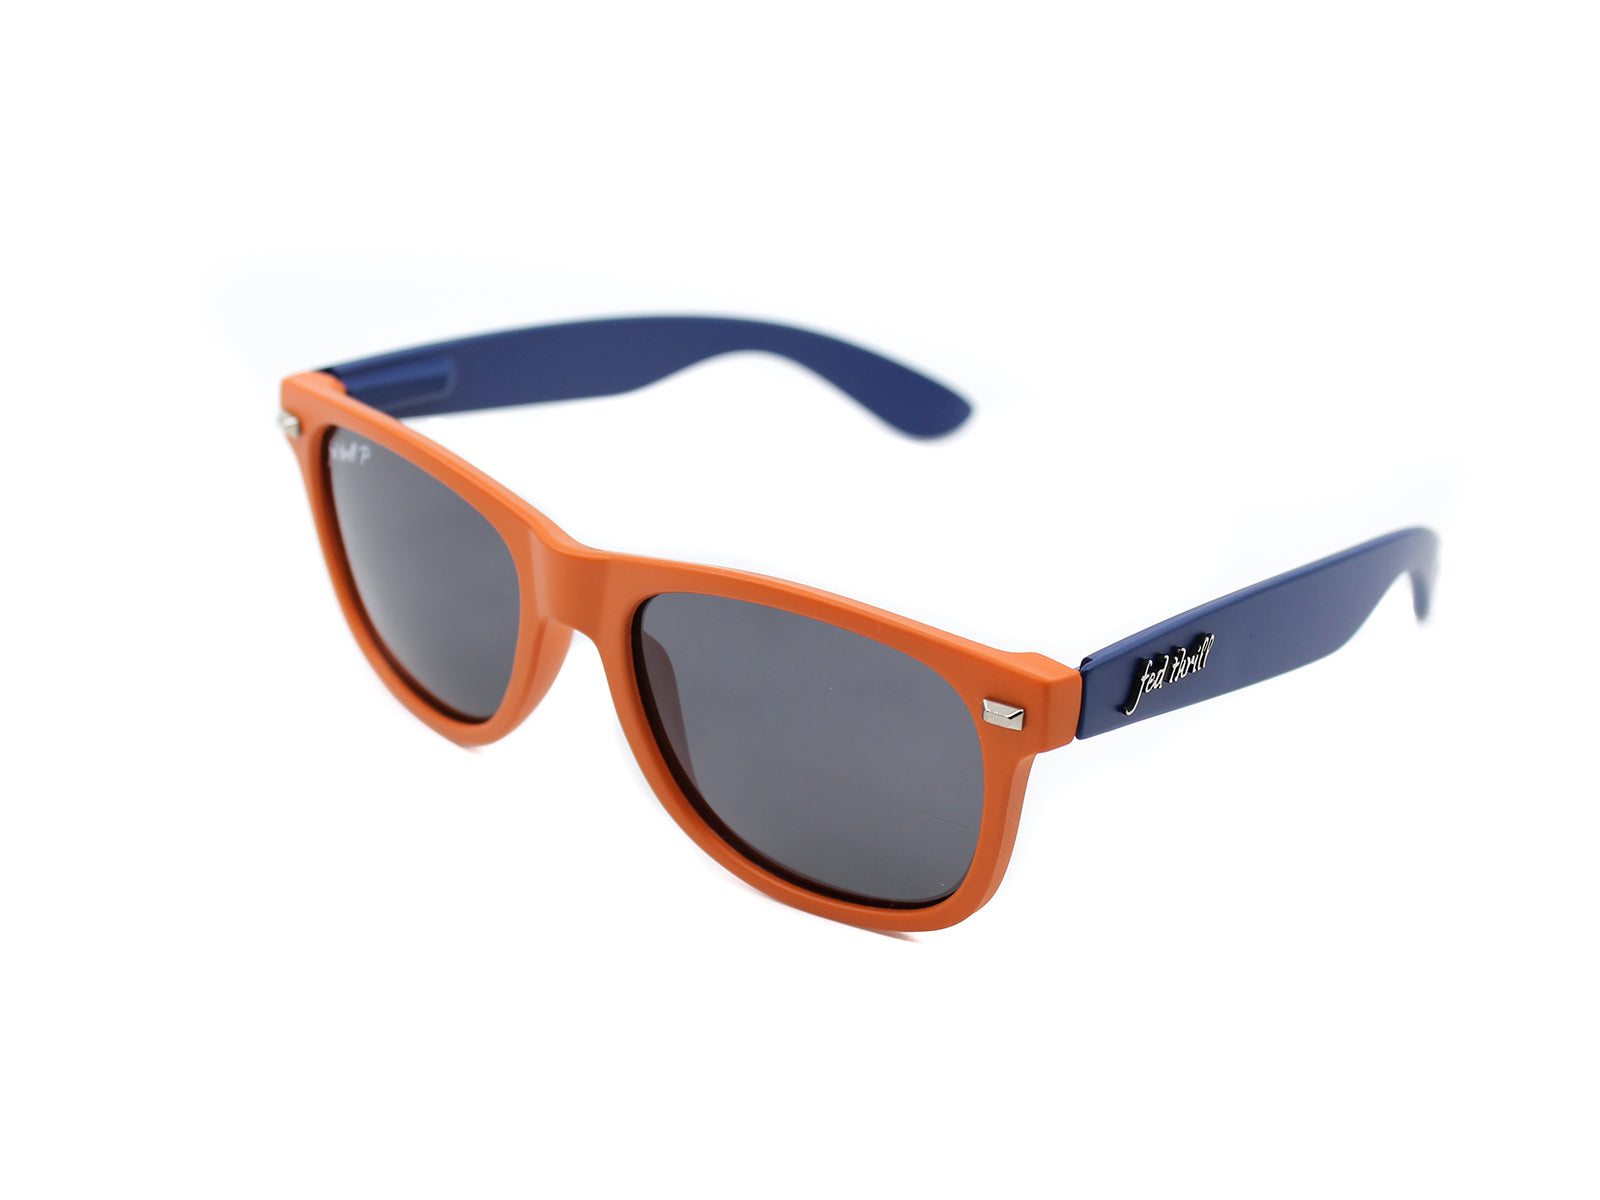 Fultons - Wahoowas: Matte Blue / Orange / Smoke Polarized